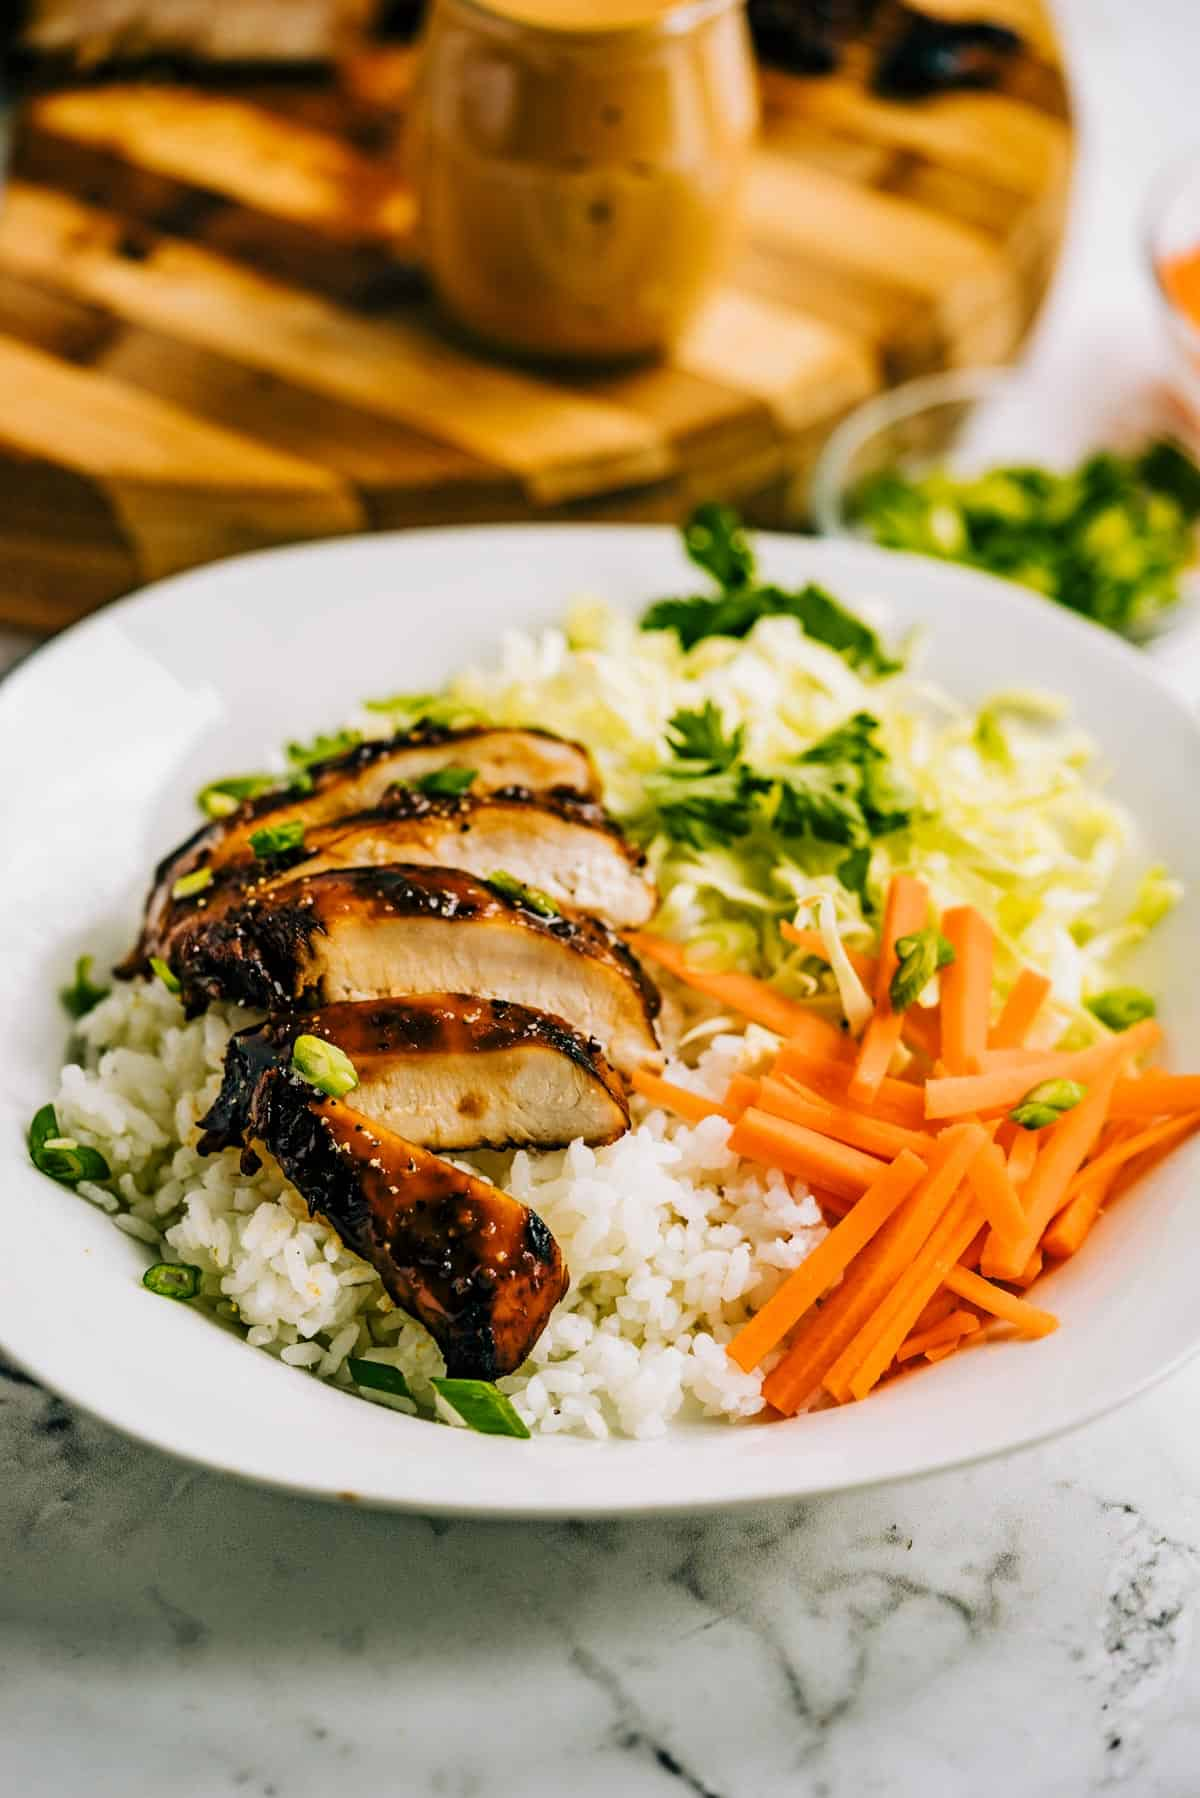 Grilled chicken on rice with carrots, celery and cilantro